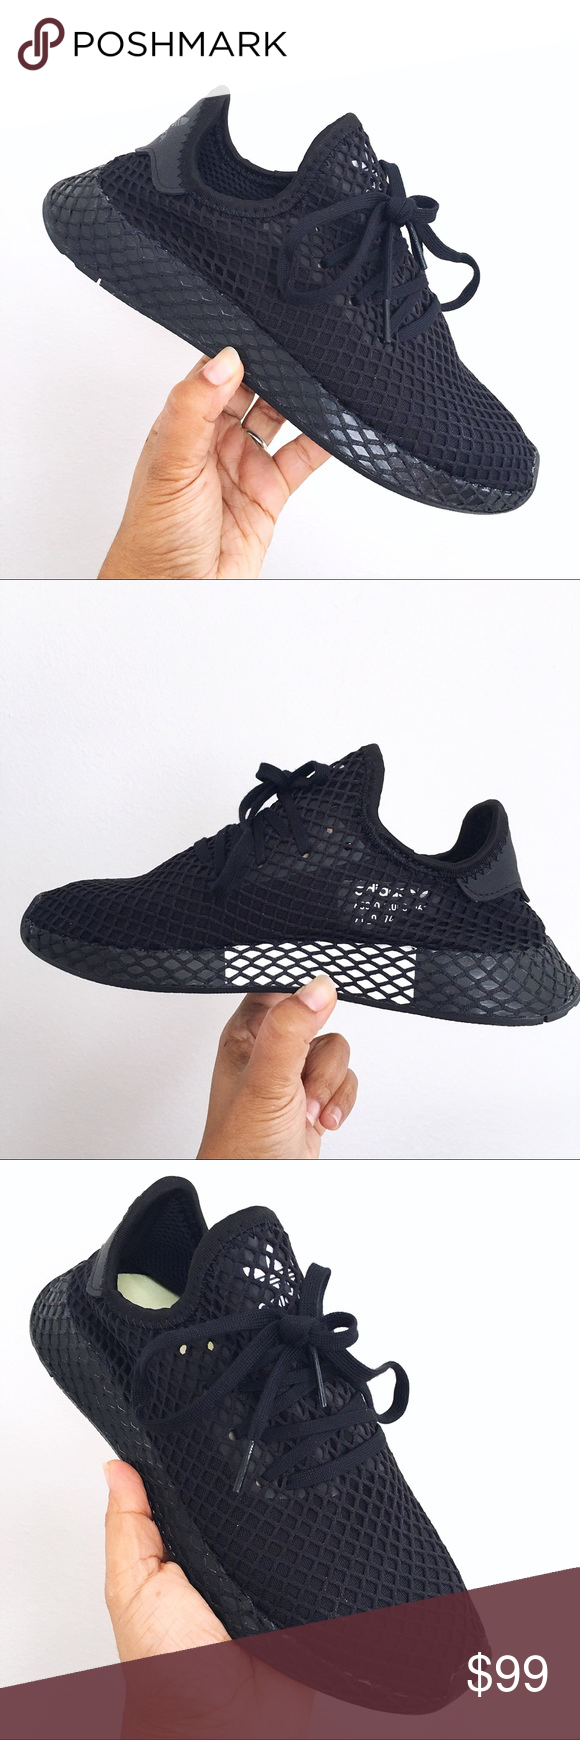 5d5cda9aa Adidas Originals Black Deerupt Runner J Runner Brand New In Box with Lid  Adidas Deerupt Runner J Black White B41877 - lightweight - web wrapped EVA  midsole ...